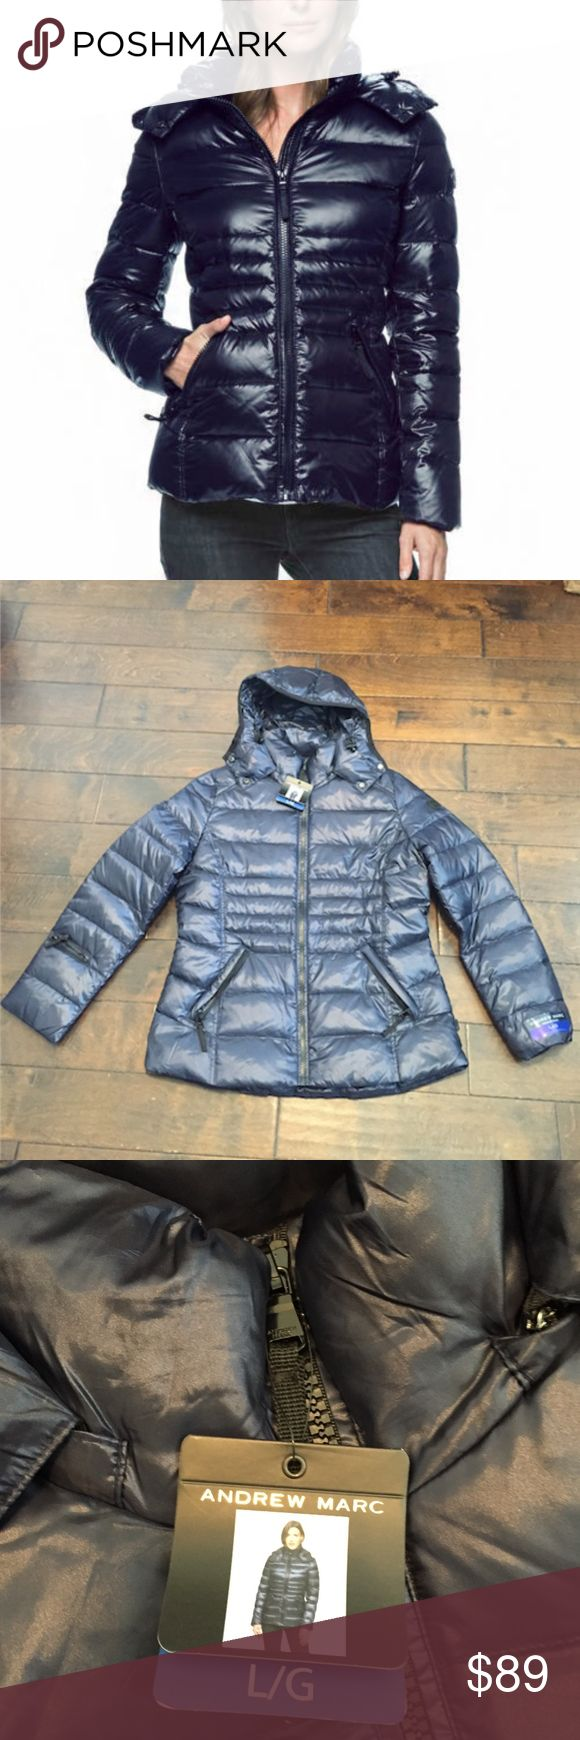 Andrew Marc Winter Jacket Navy *Large Authentic brand new Andrew Marc Winter Jacket in Navy. Size large Andrew Marc Jackets & Coats